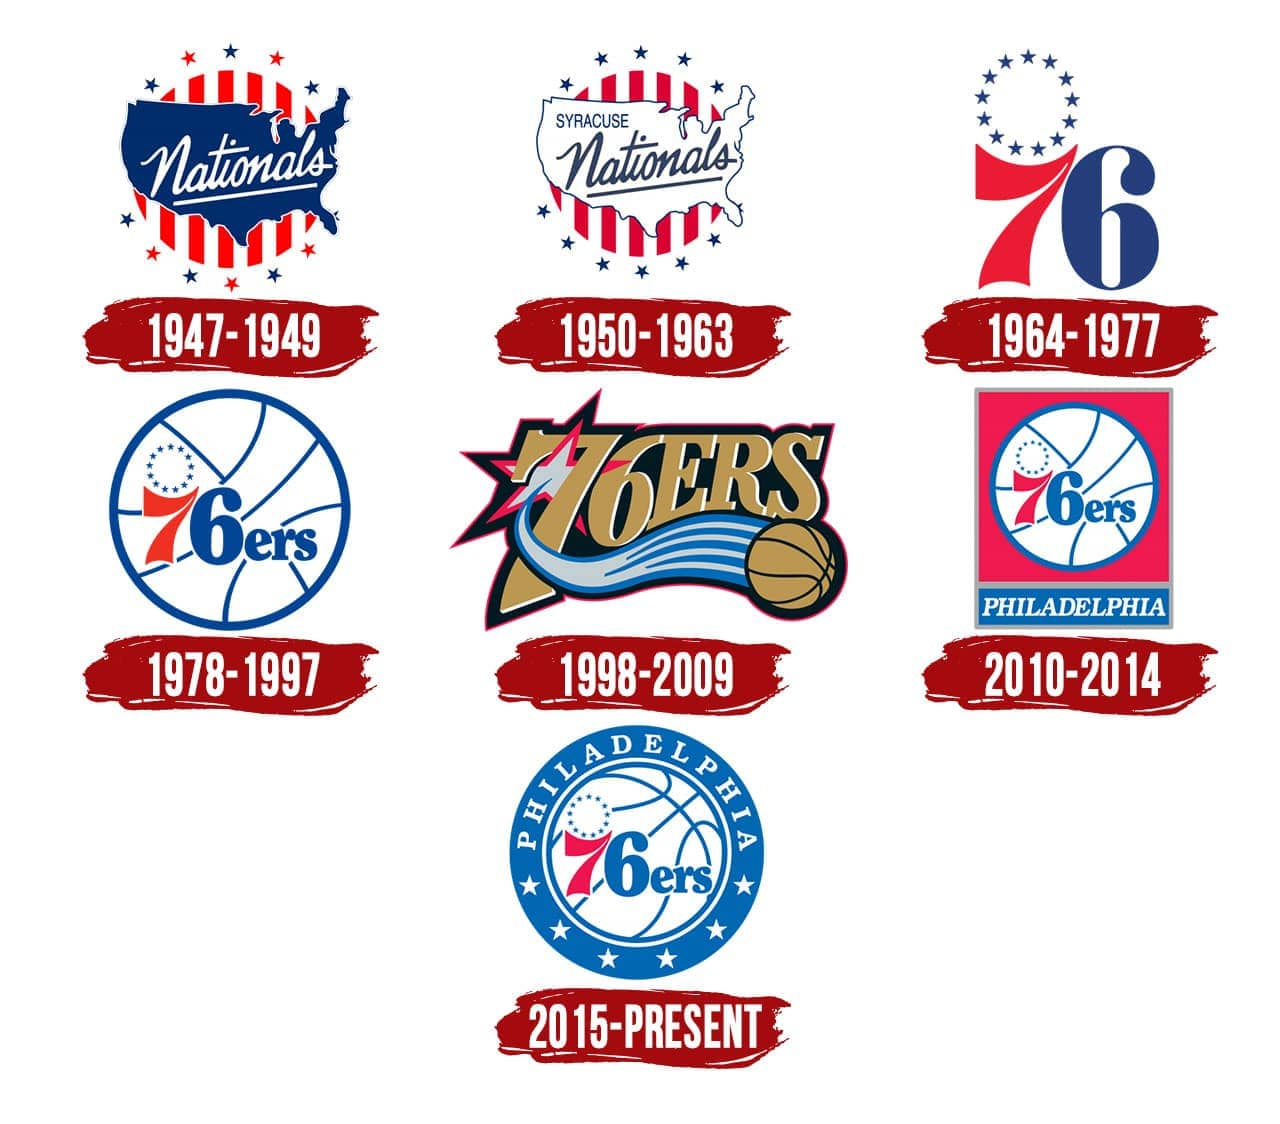 Philadelphia 76ers Logo The Most Famous Brands And Company Logos In The World